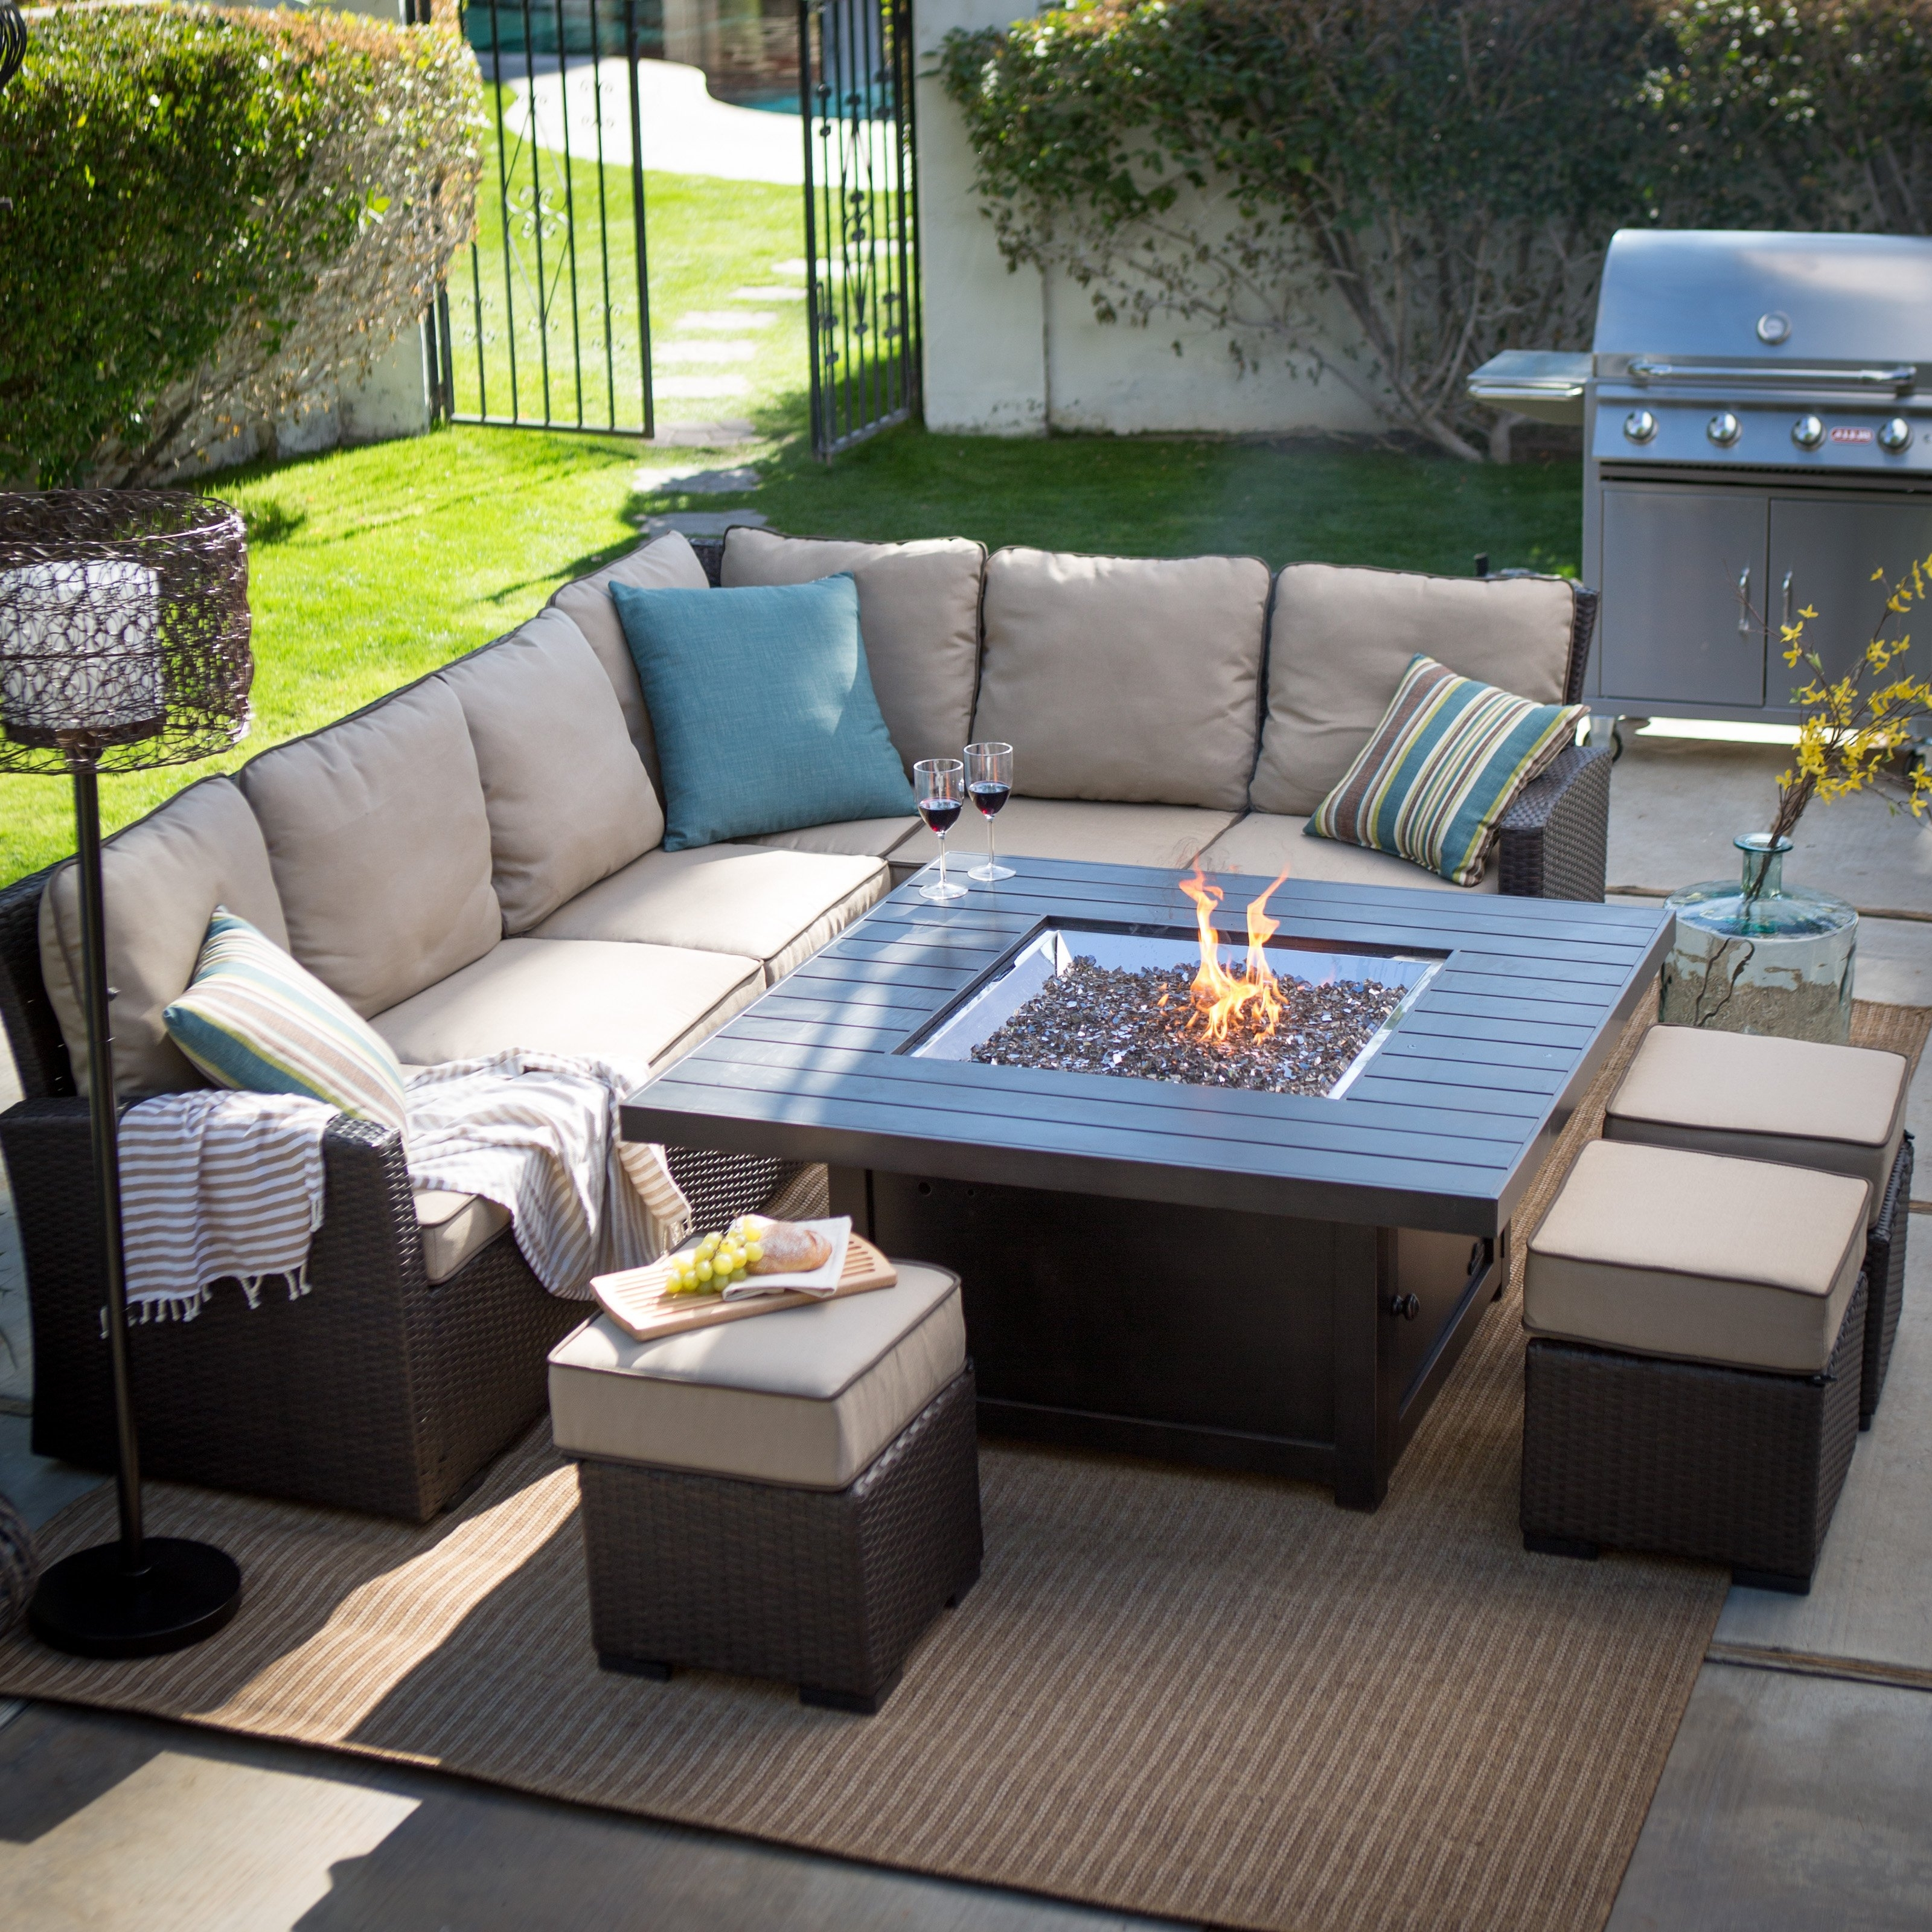 Dining Table With Fire Pit In Middle Verona Height Propane Patio For Recent Patio Conversation Dining Sets (Gallery 16 of 20)